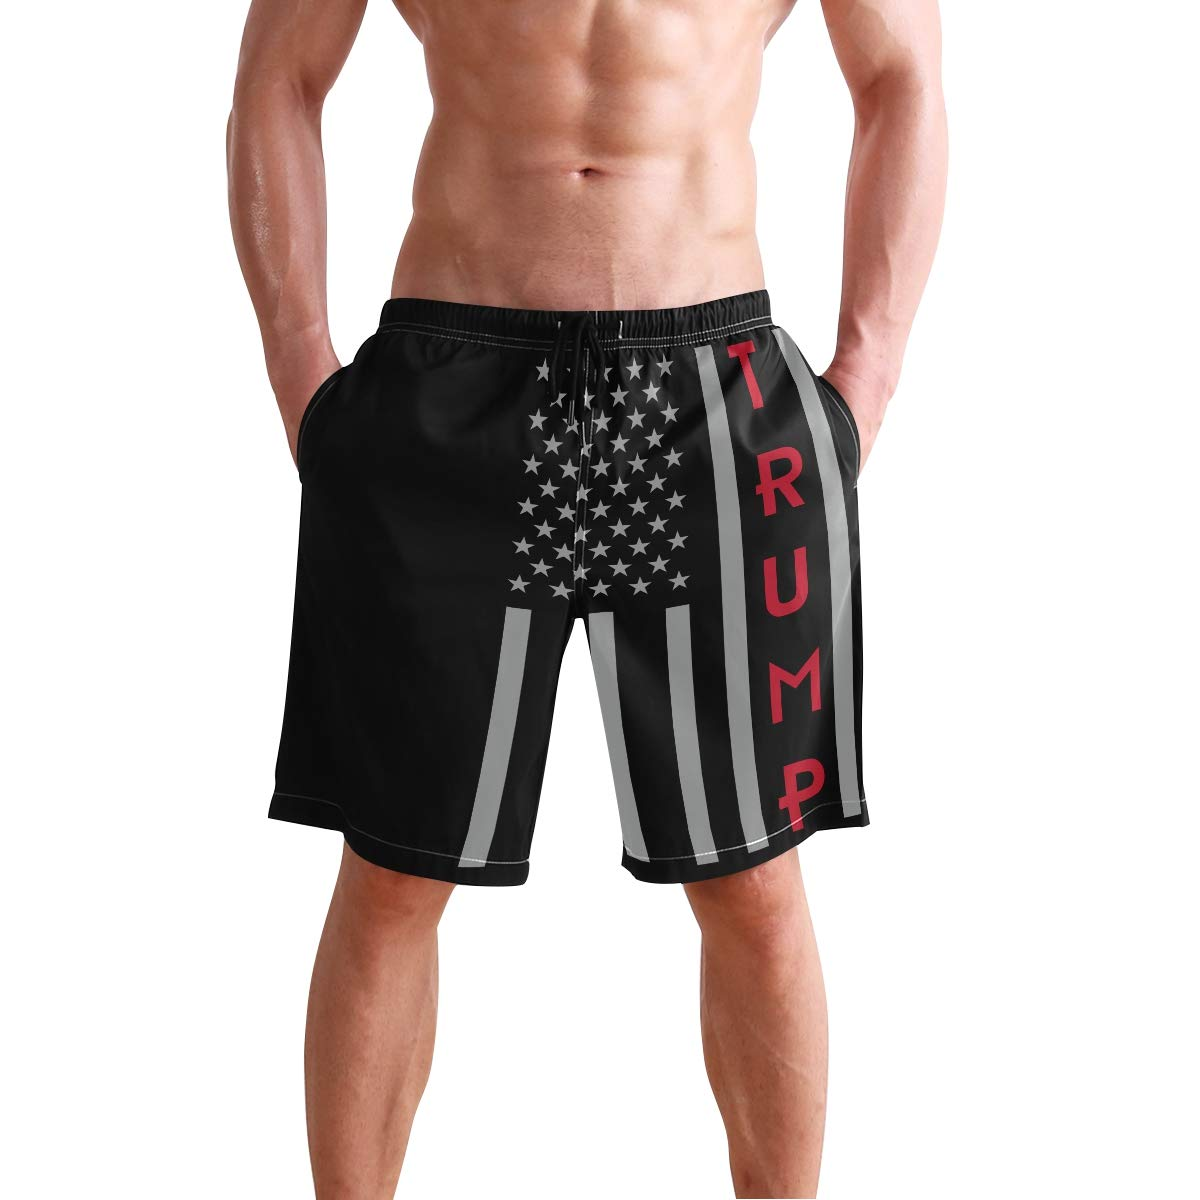 Men Summer USA Thin Red Line Flagtrump 2020 Quick Dry Volleyball Beach Shorts Board Shorts